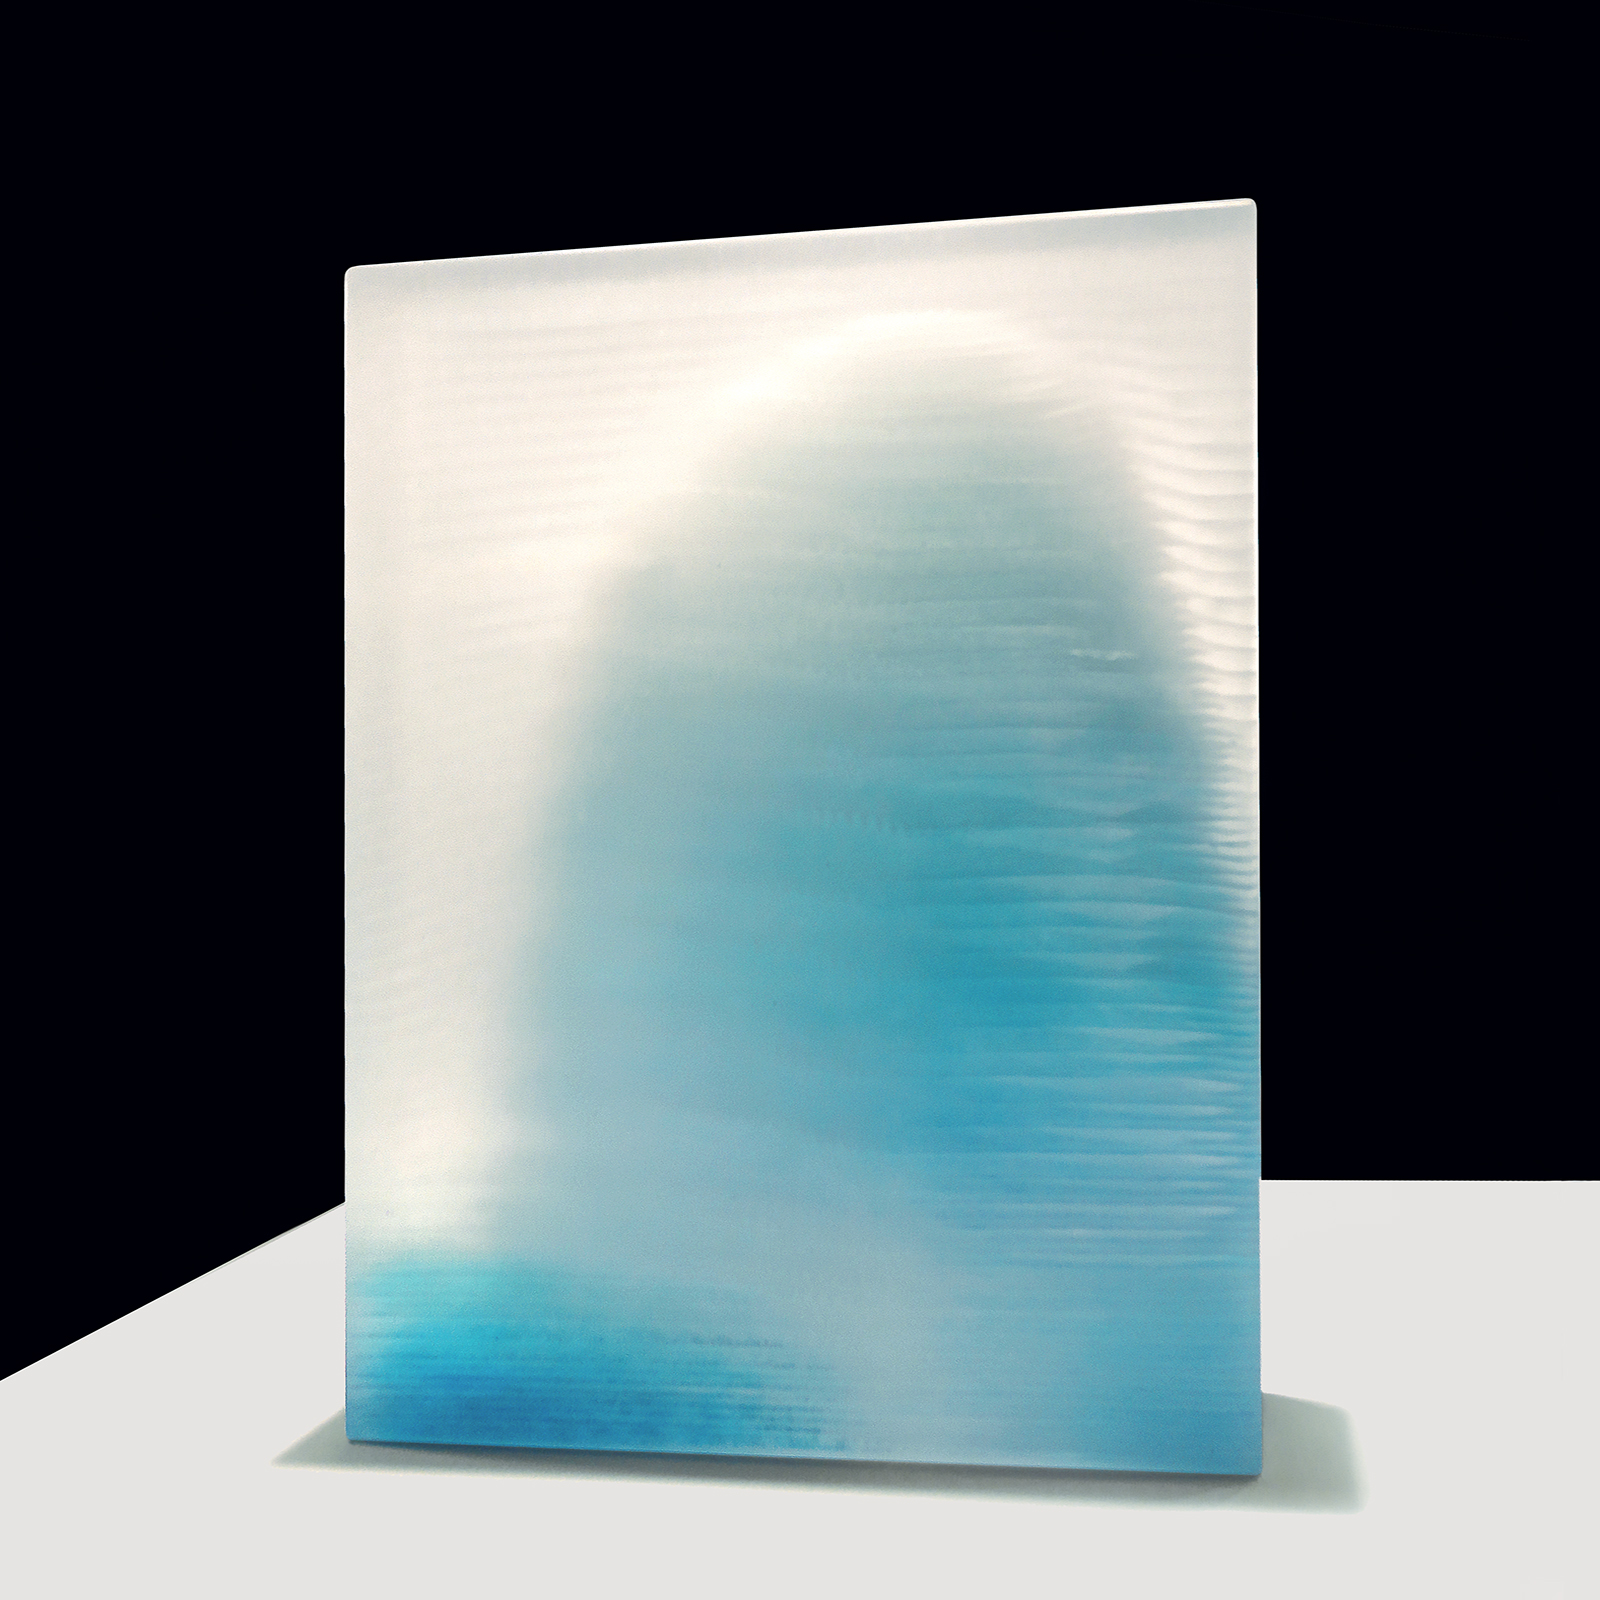 Frozen #4 by Emma Varga Fused and cast glass sculpture H 42cm x W 31cm x D 5cm